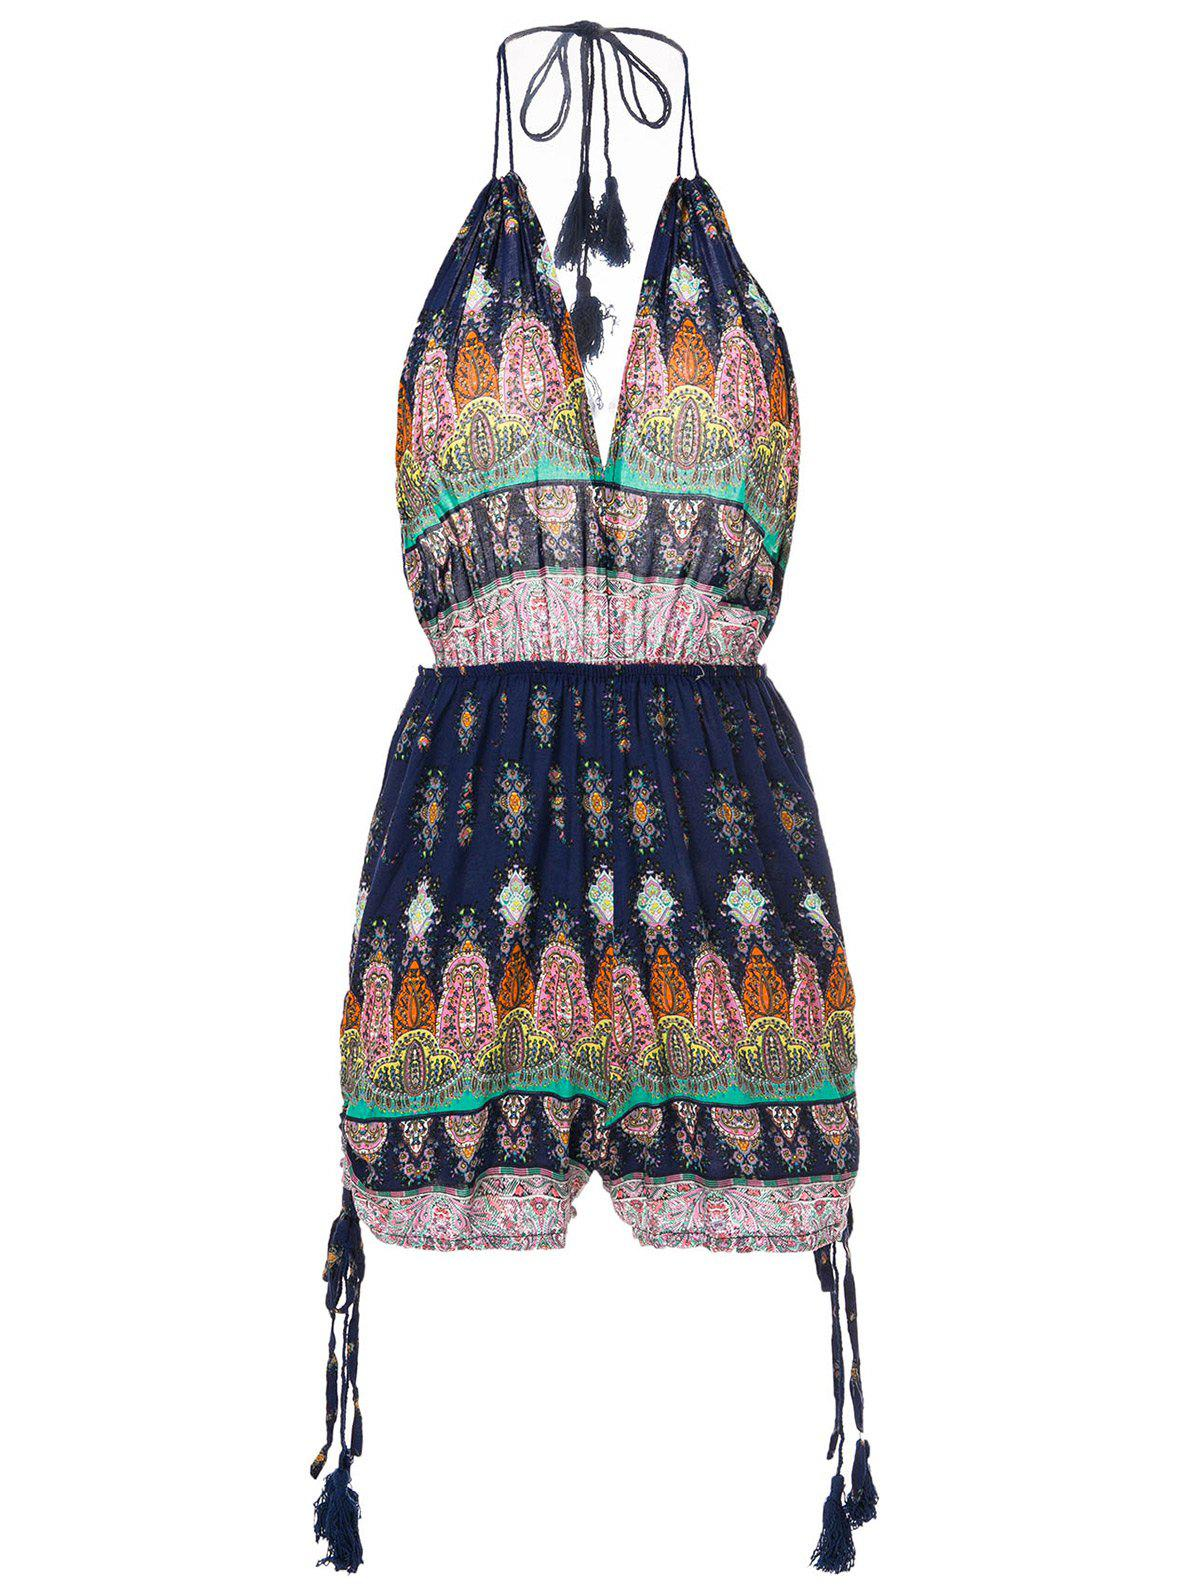 Casual Halter Sleeveless Printed Low Cut Backless Women's Romper - PURPLISH BLUE M